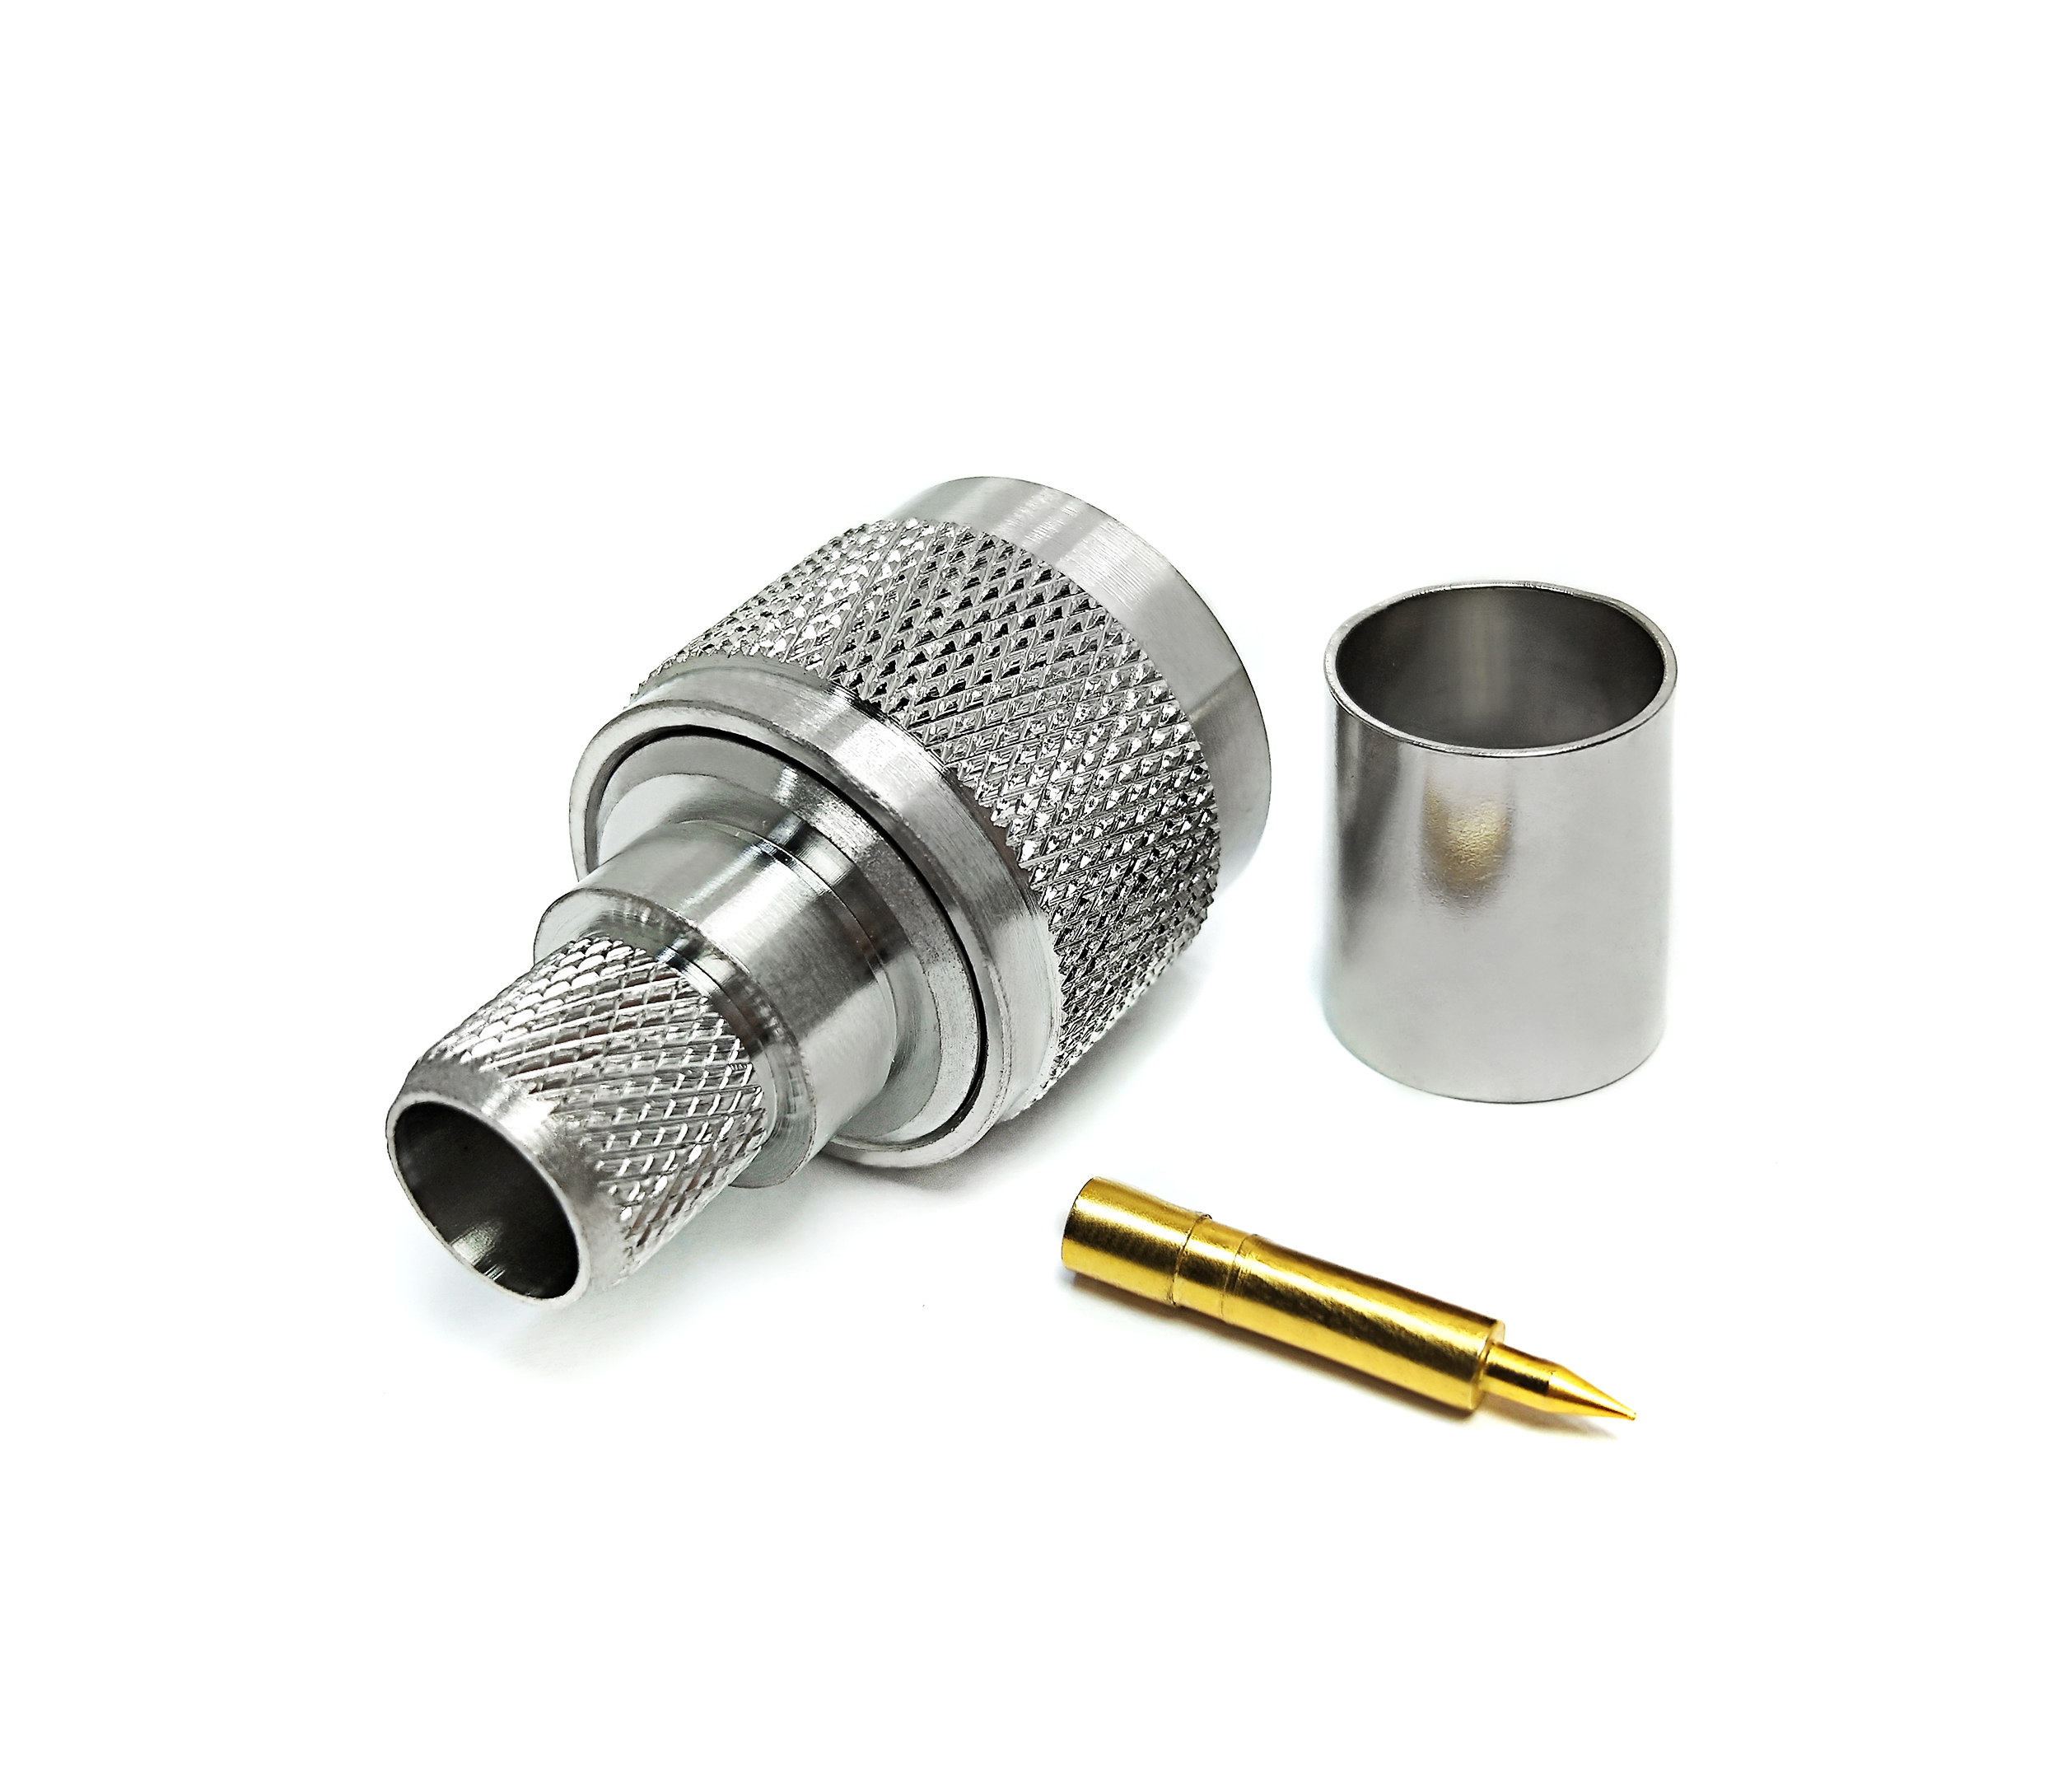 RF coaxial connector adaptor DC electrical terminal connector for cable LMR200